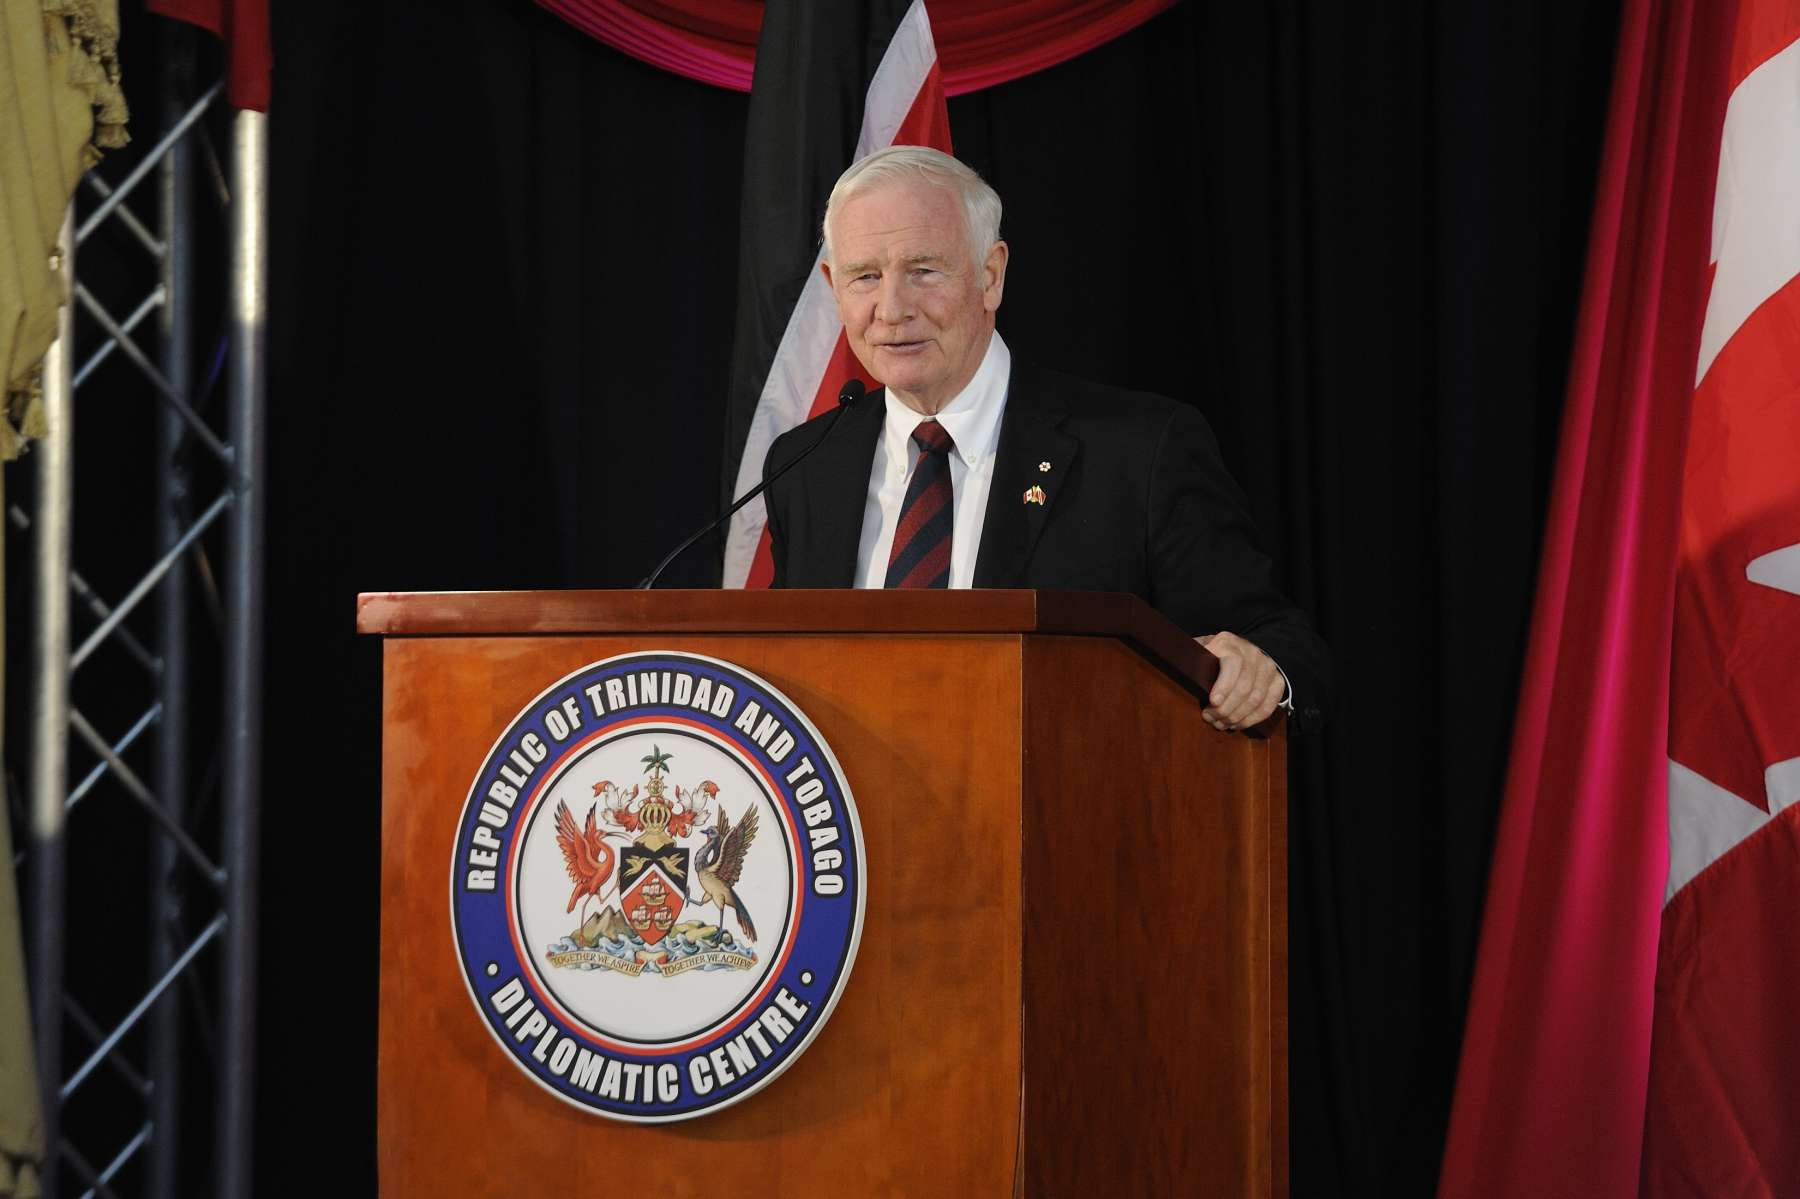 The Governor General delivered remarks on this occasion.